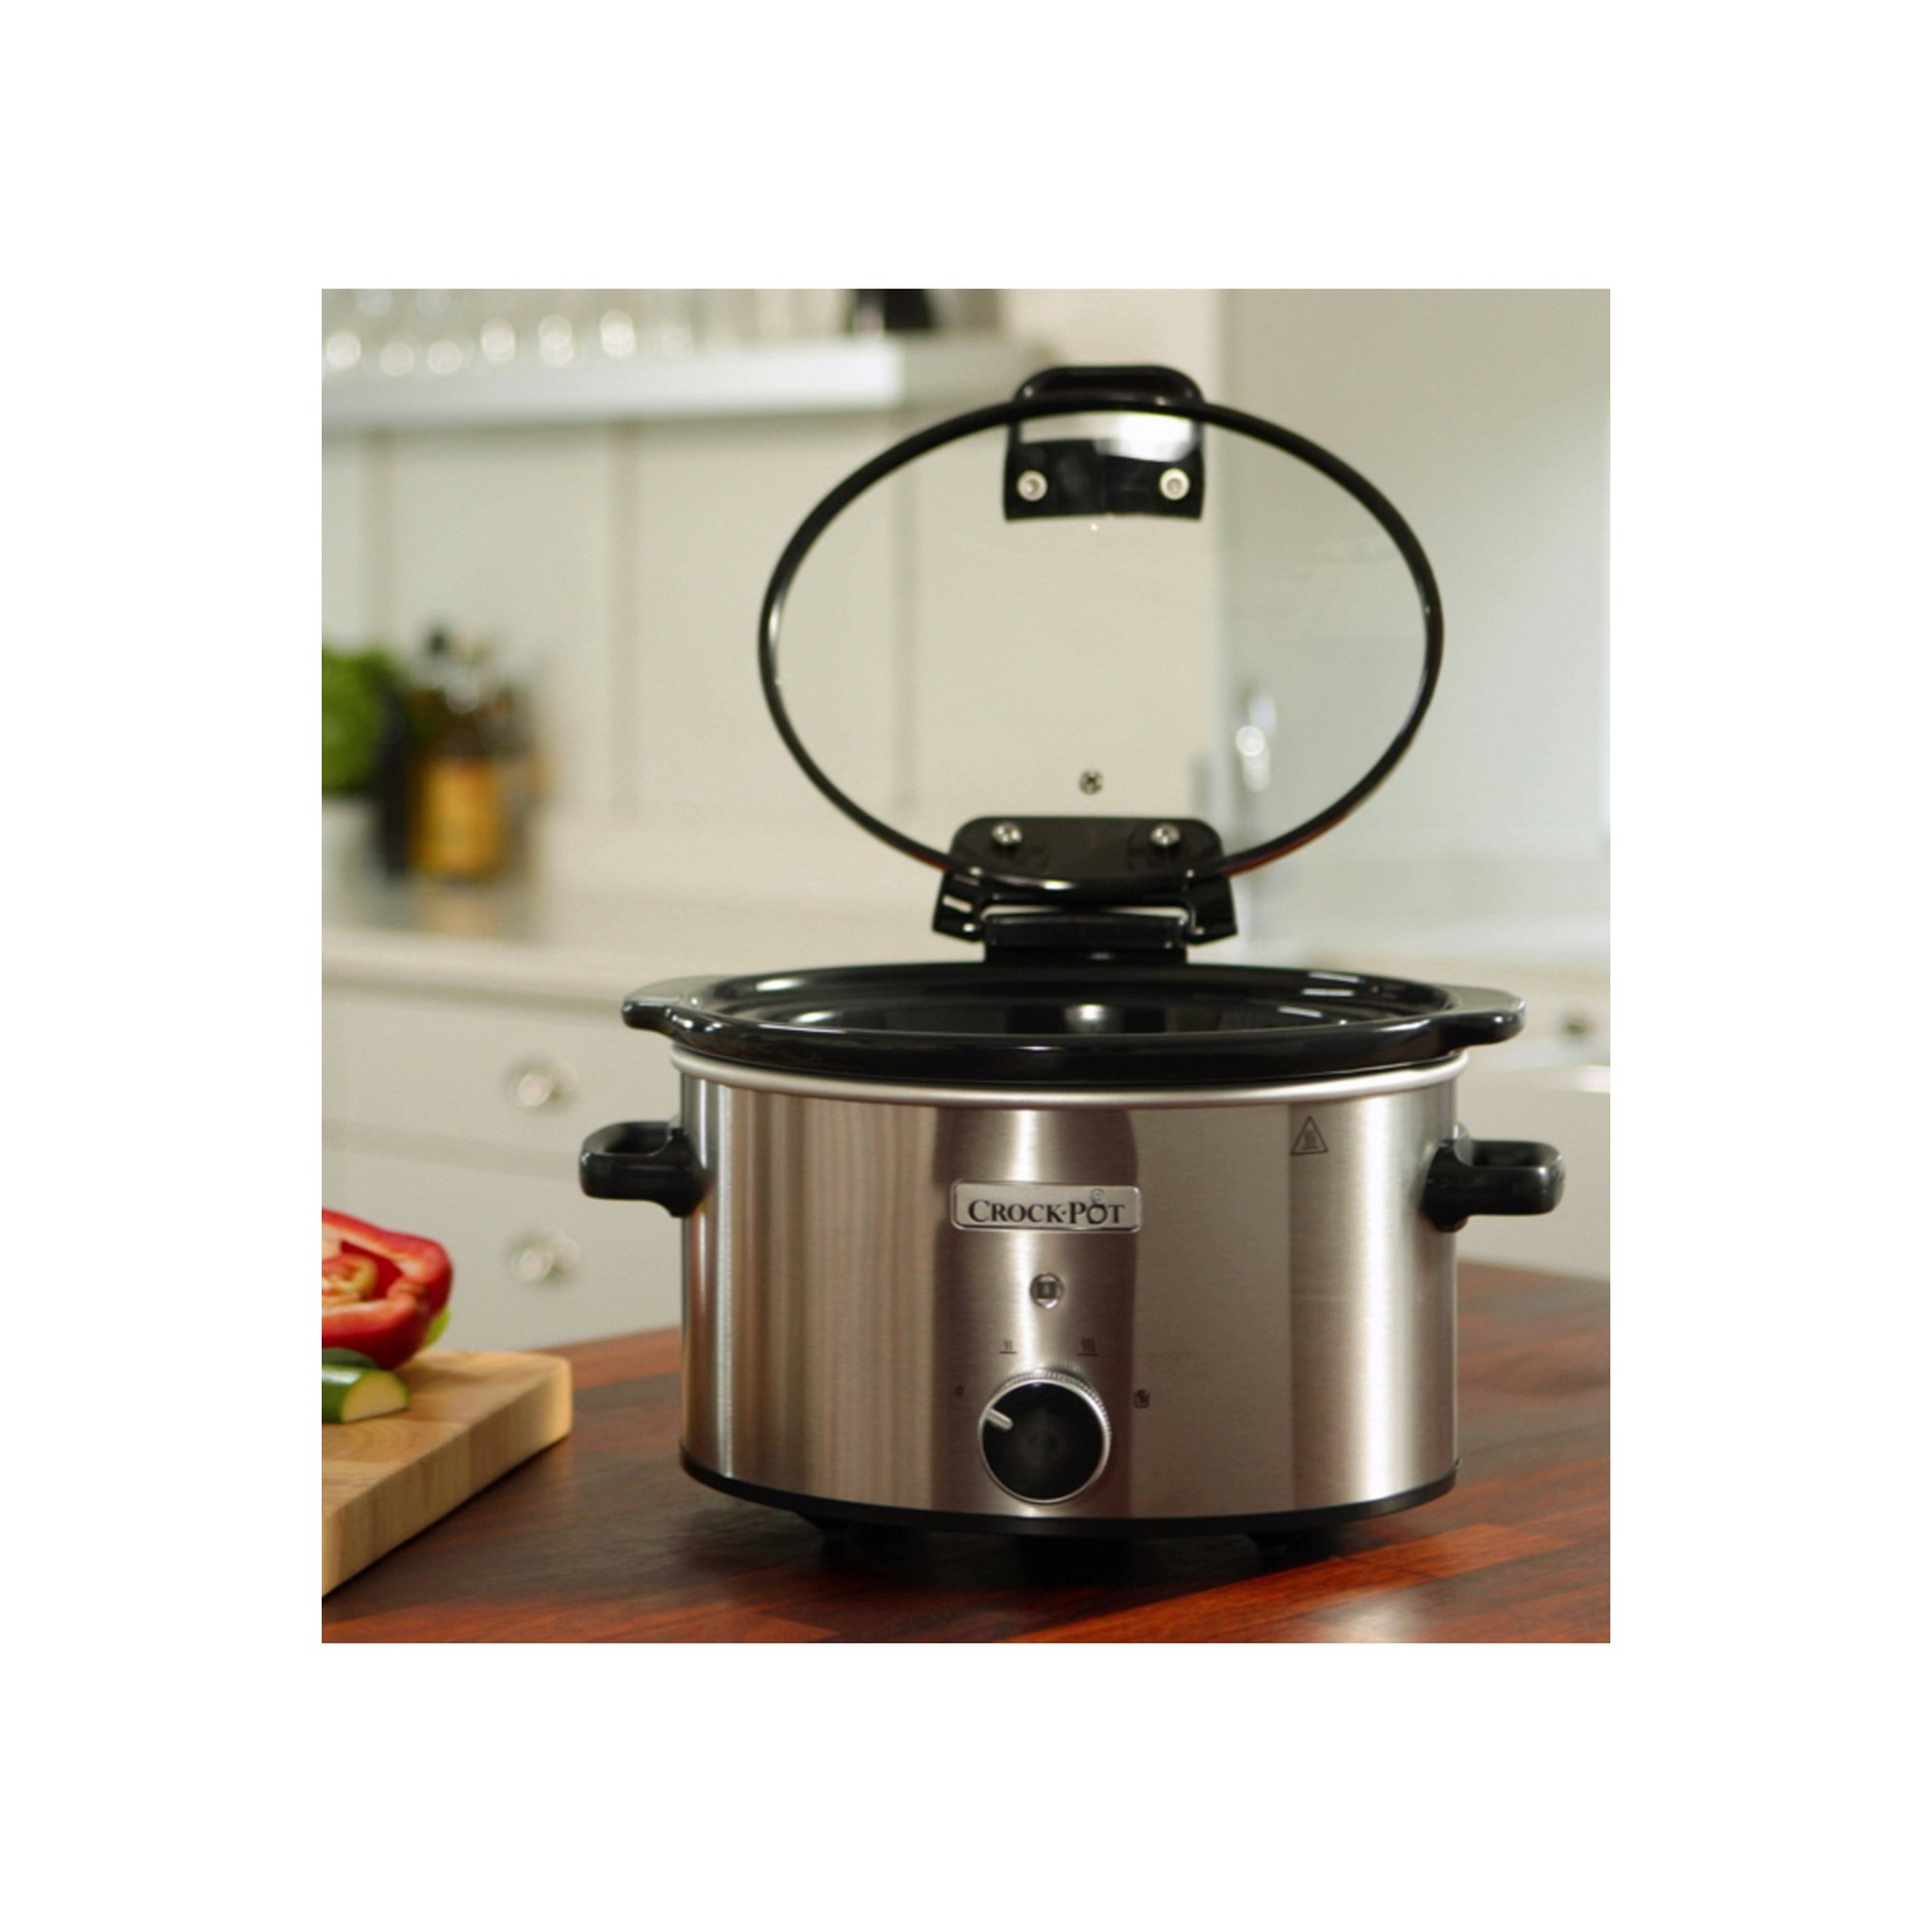 Image of Crock Pot 3.5L Slow Cooker with Hinged Lid